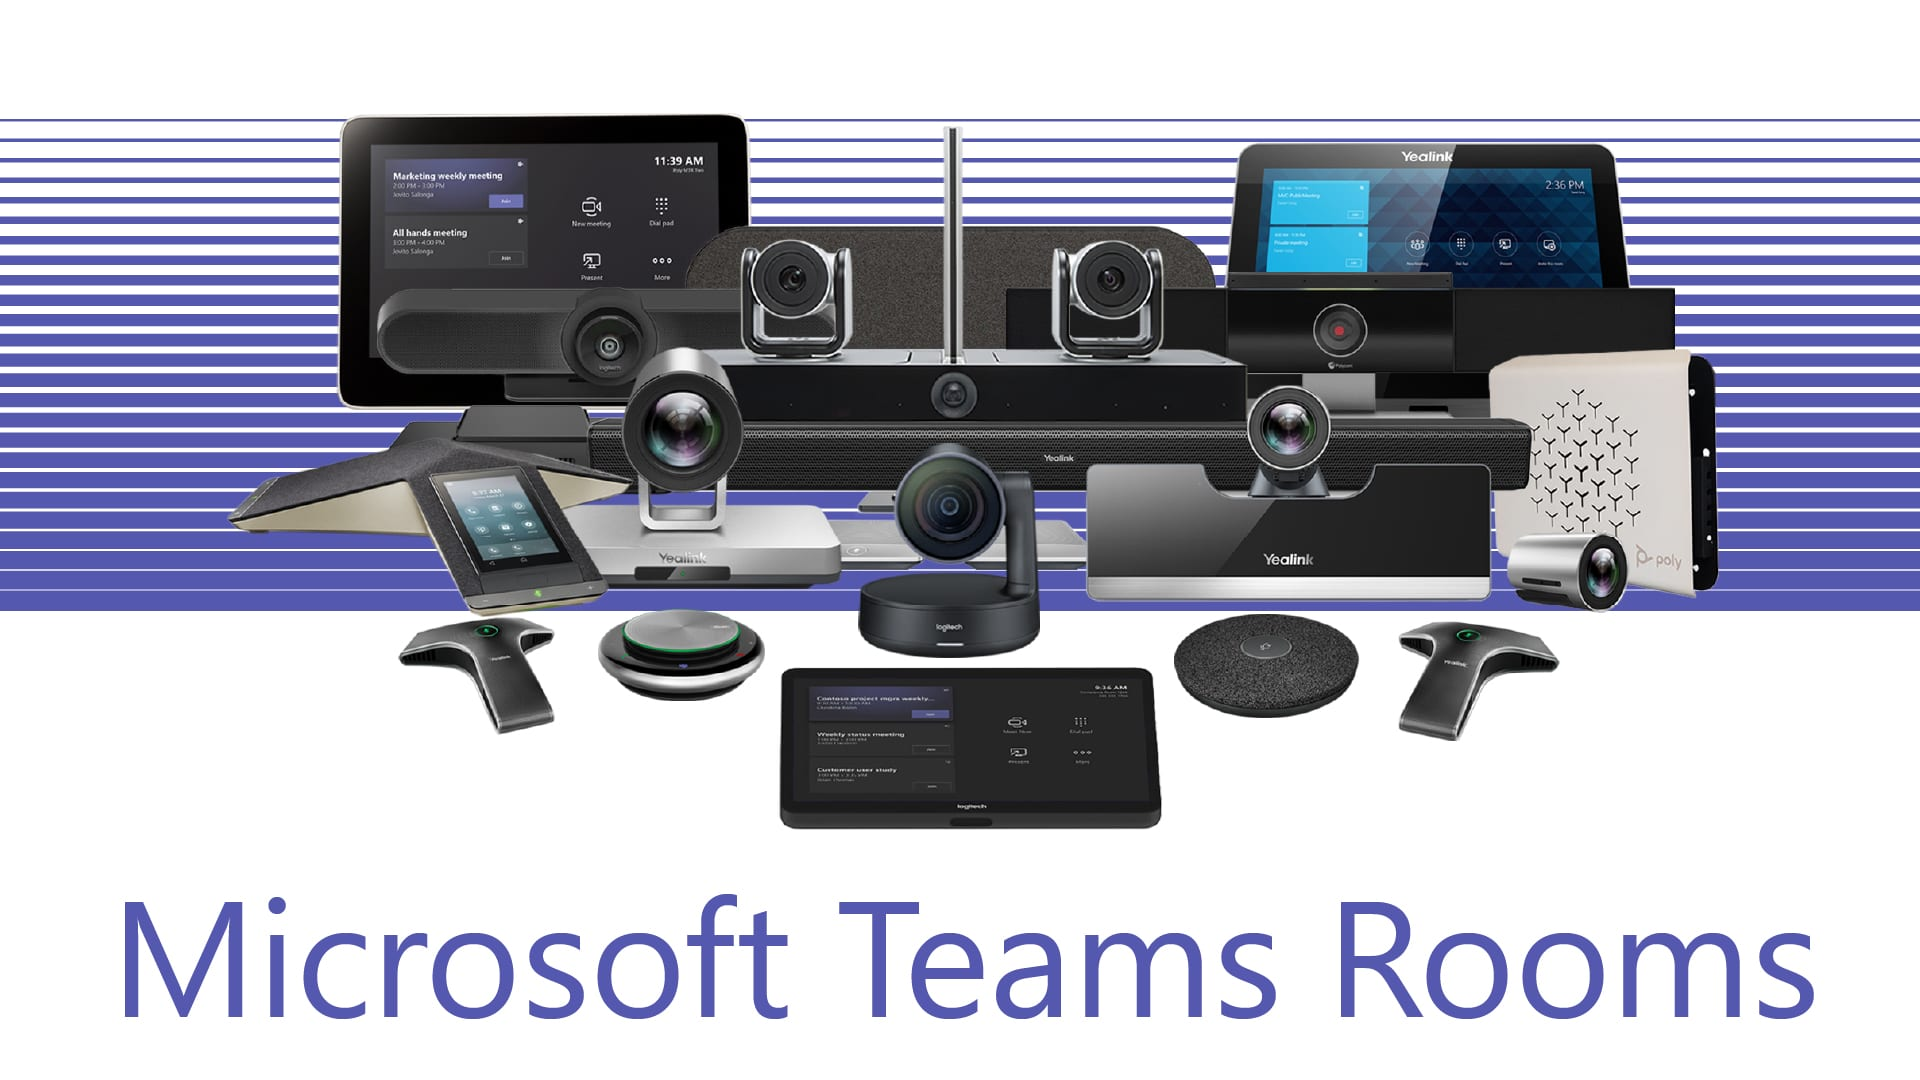 What is a Microsoft Teams Room?